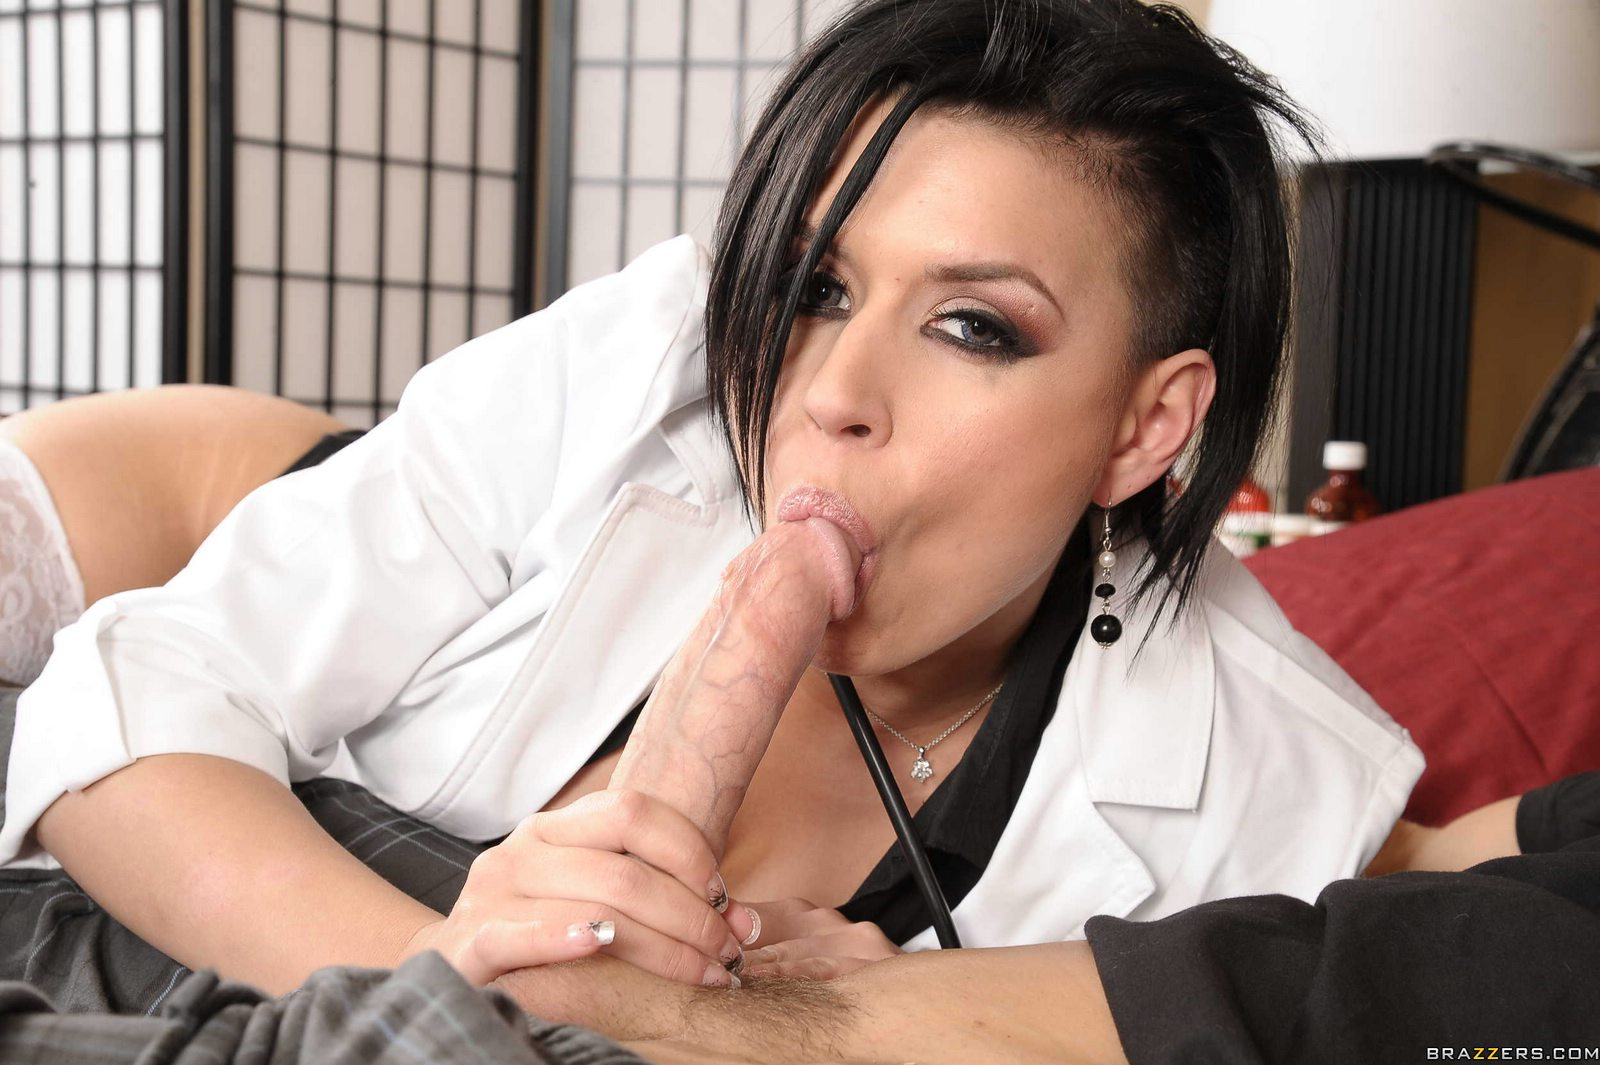 Eva angelina doctor